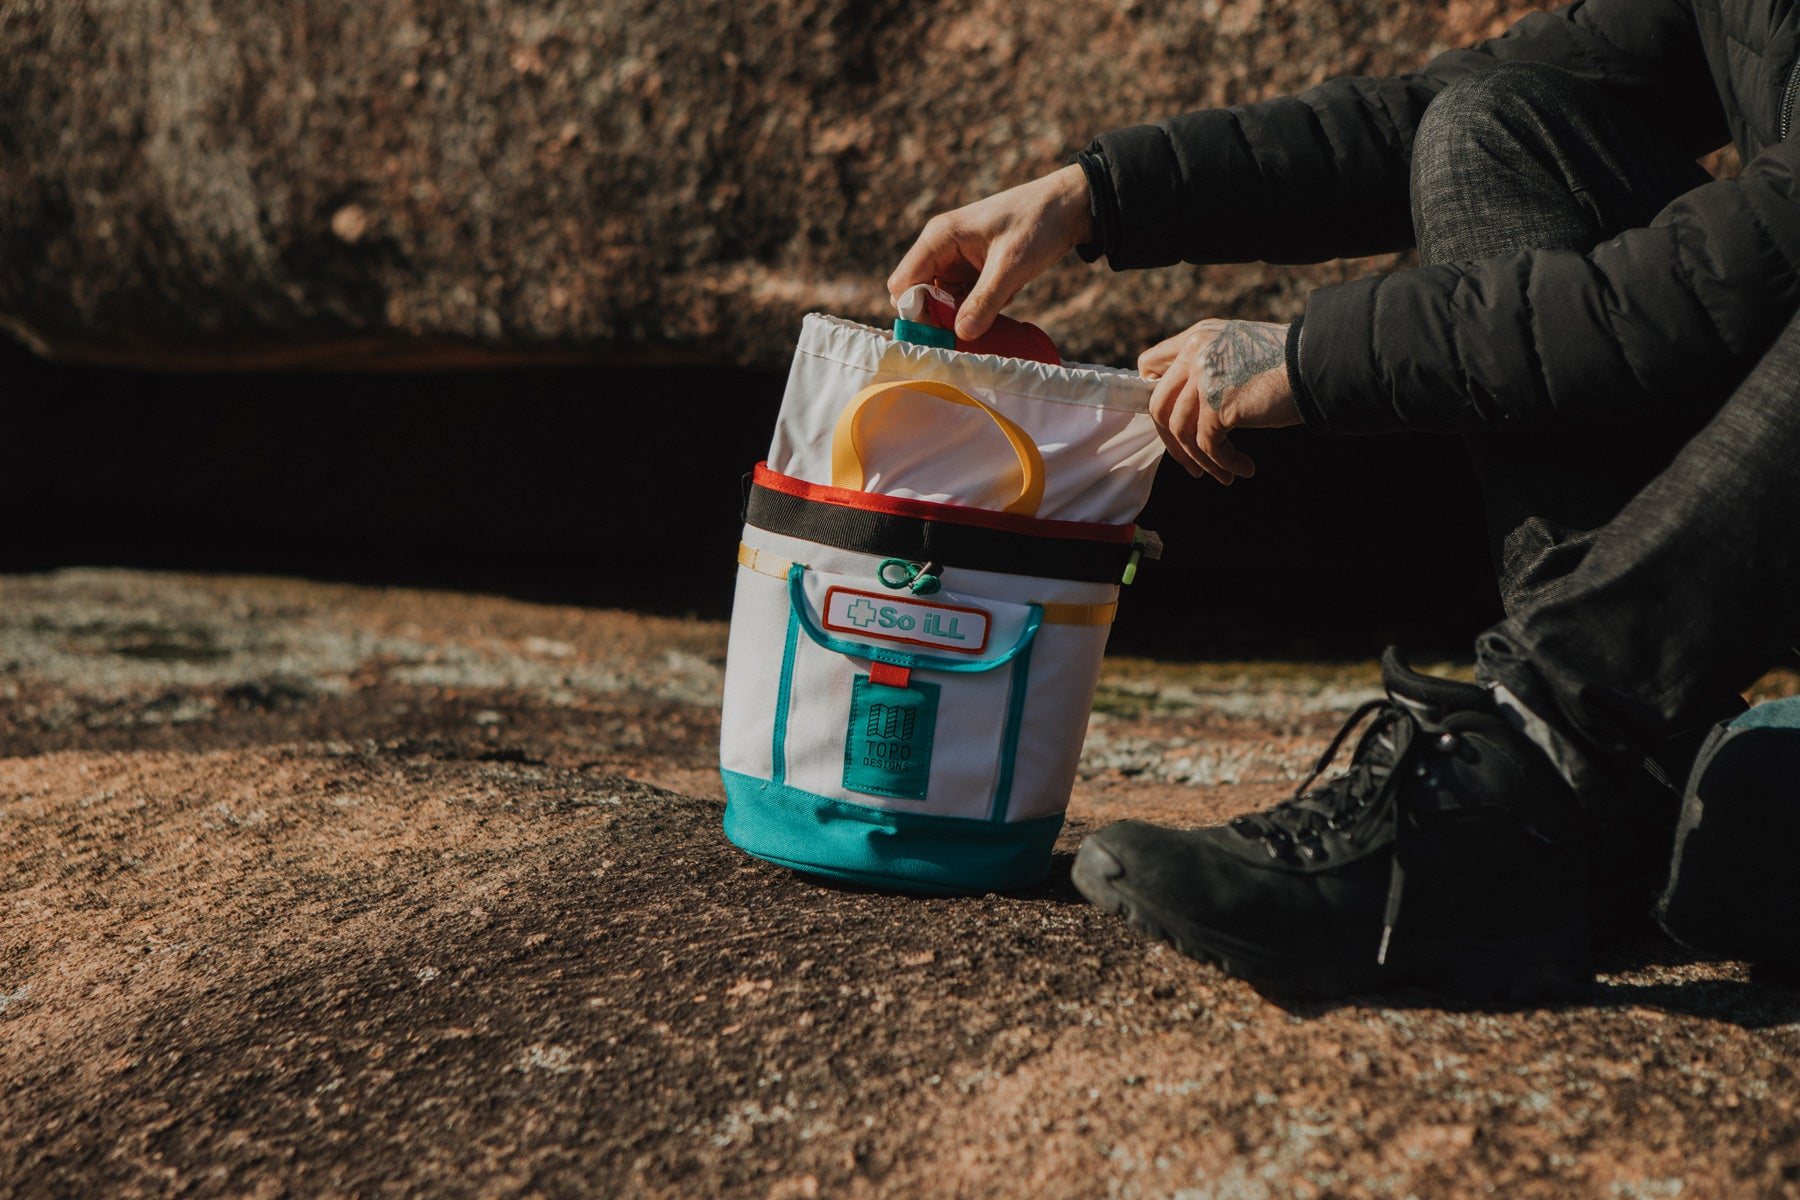 the topo x so ill chalk bucket is featured at elephant rocks